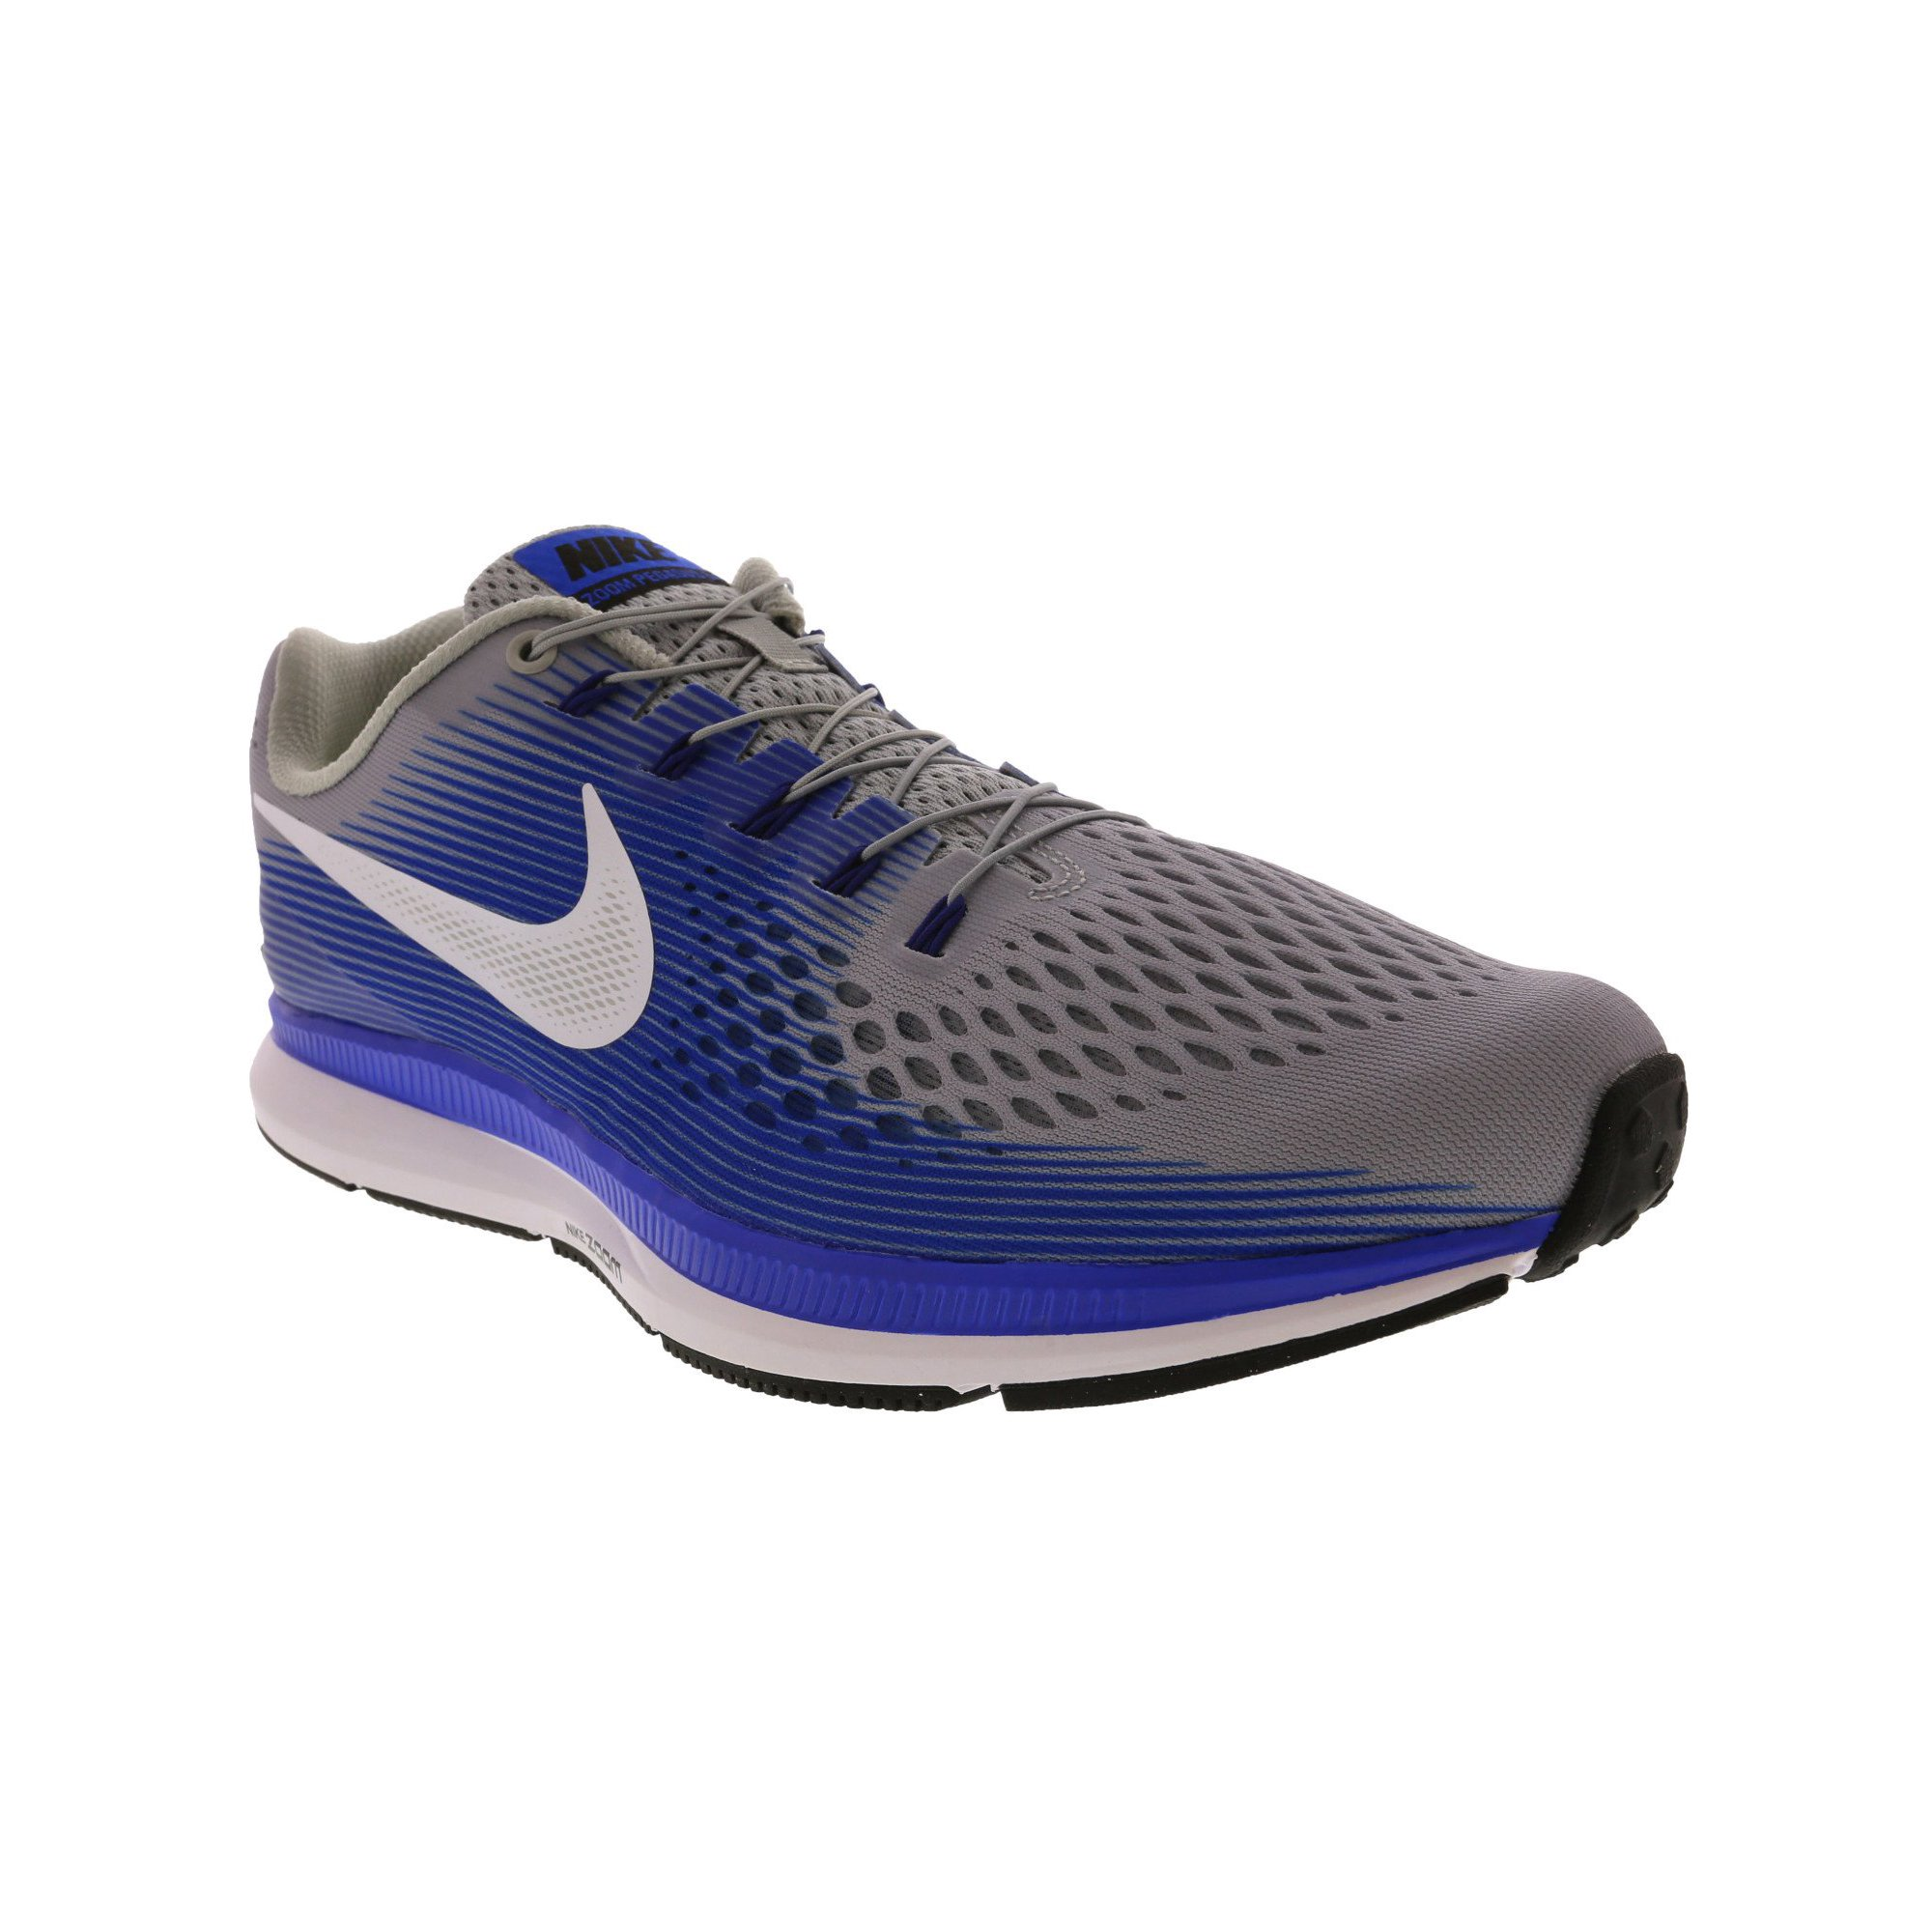 9f17df08508ac Nike Men's Air Zoom Pegasus 34 Flyease Thunder Blue / White Ankle ...